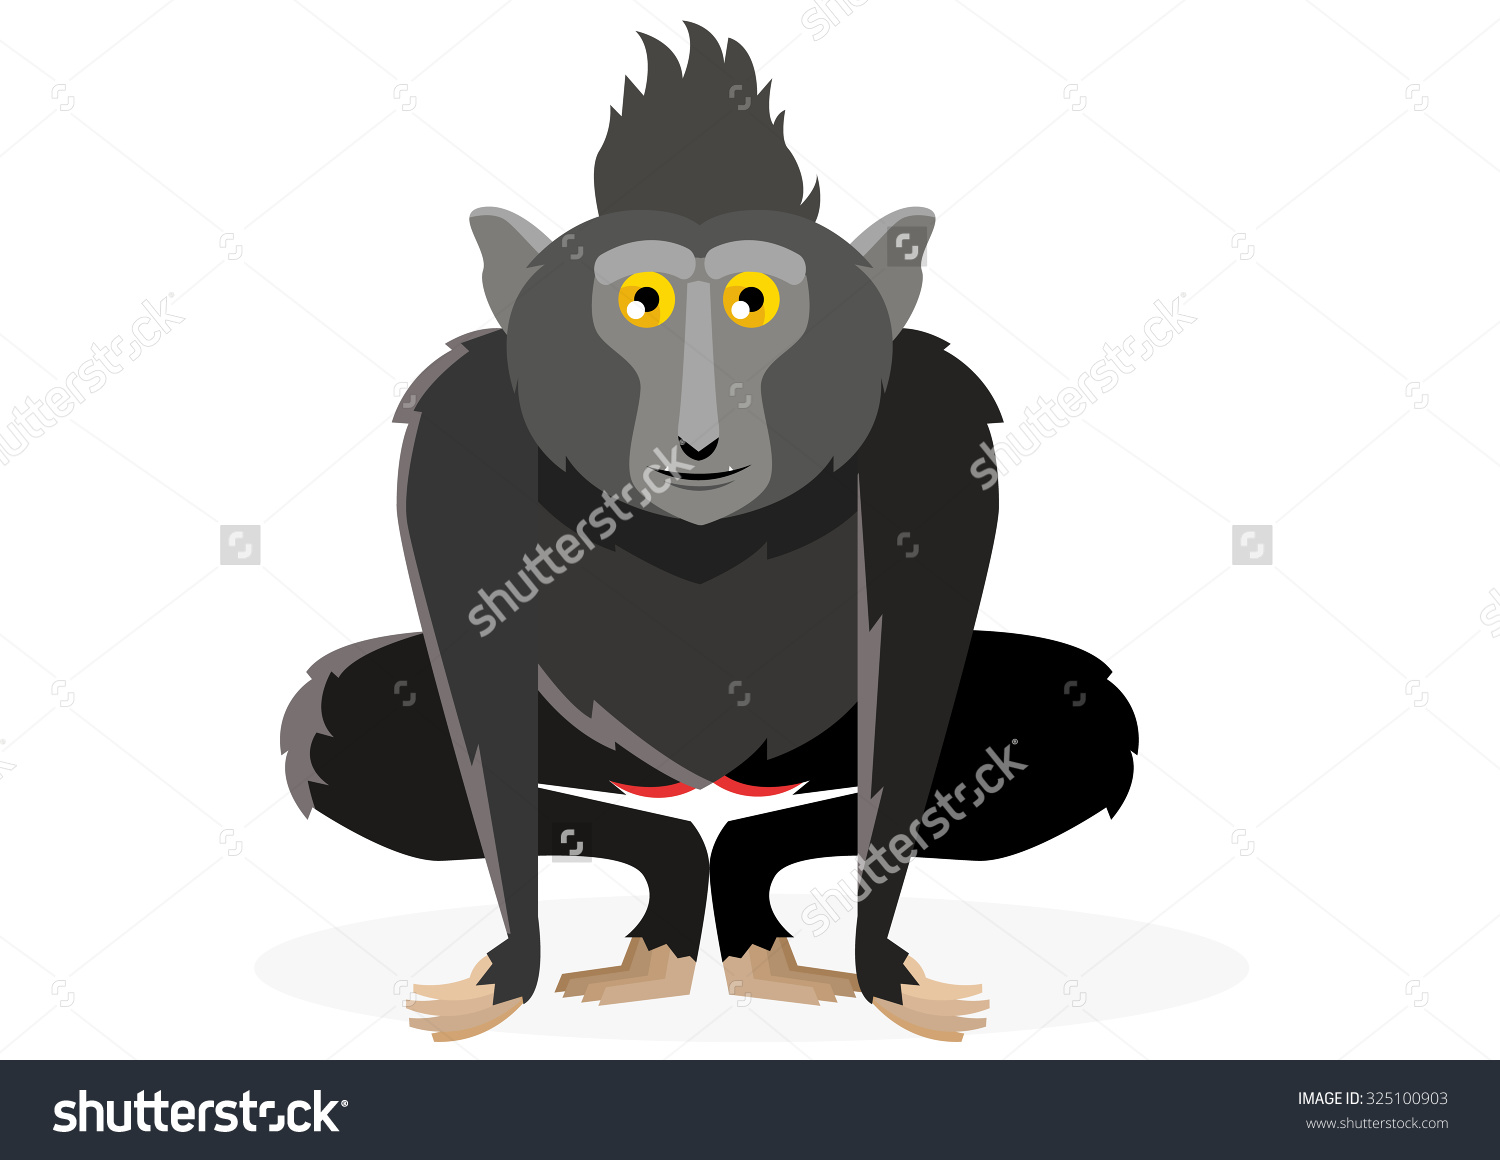 Crested Black Macaque clipart #10, Download drawings